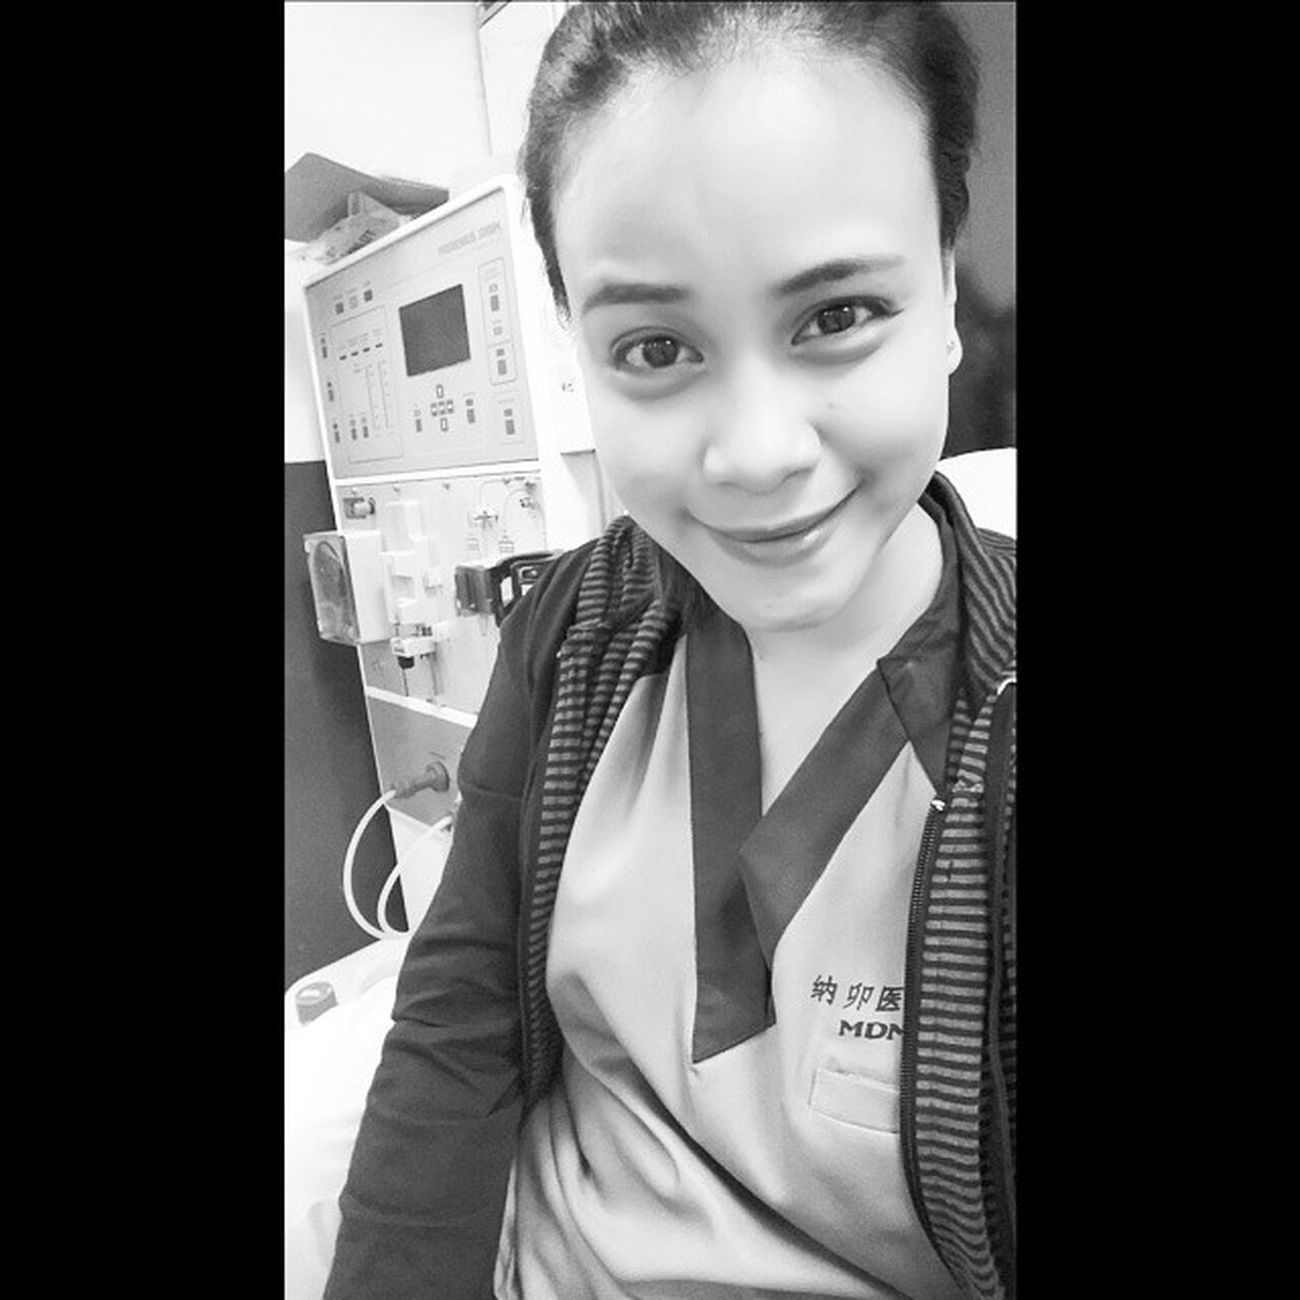 After 16 hours duty!